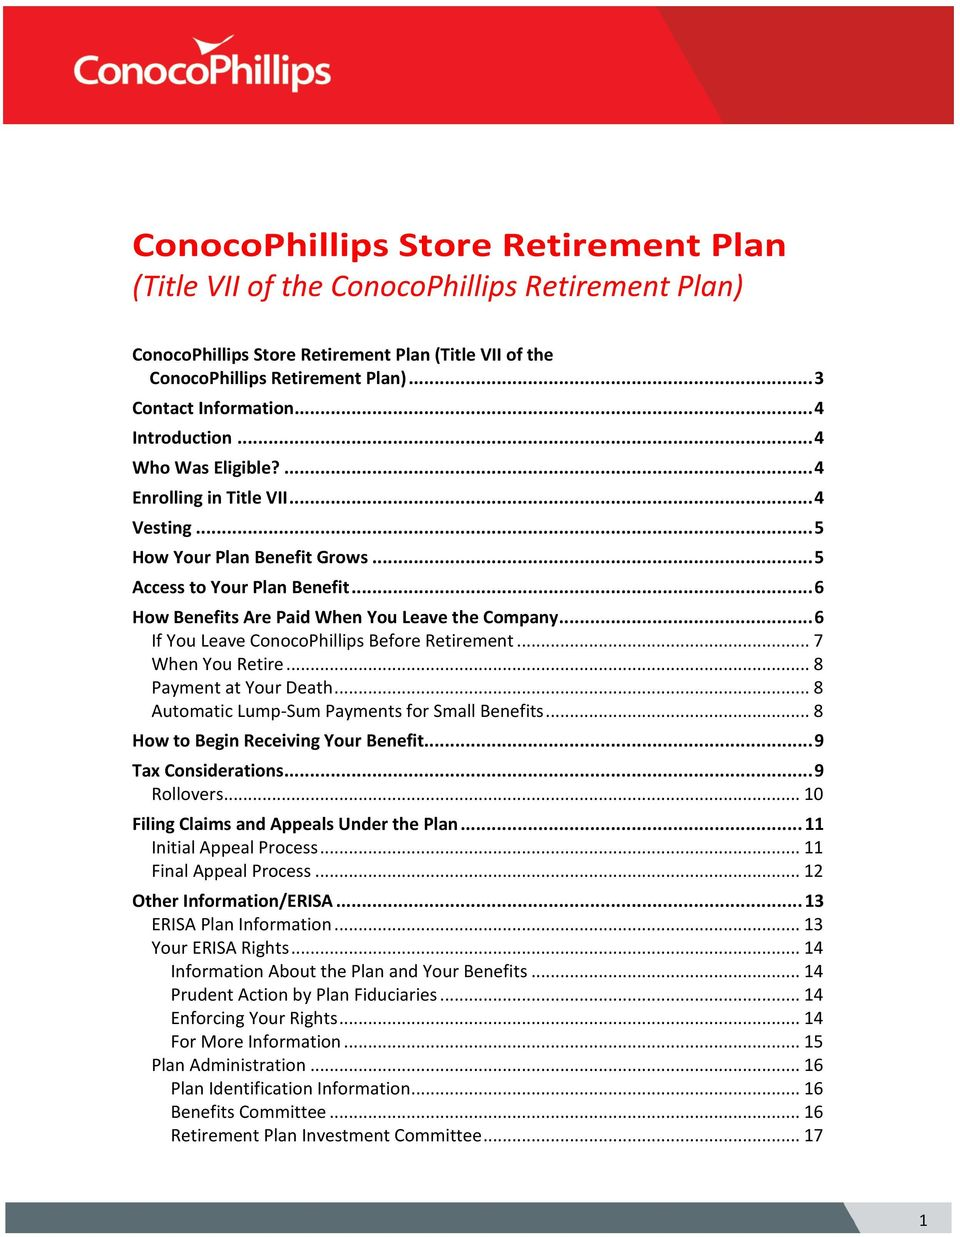 .. 6 If You Leave ConocoPhillips Before Retirement... 7 When You Retire... 8 Payment at Your Death... 8 Automatic Lump-Sum Payments for Small Benefits... 8 How to Begin Receiving Your Benefit.